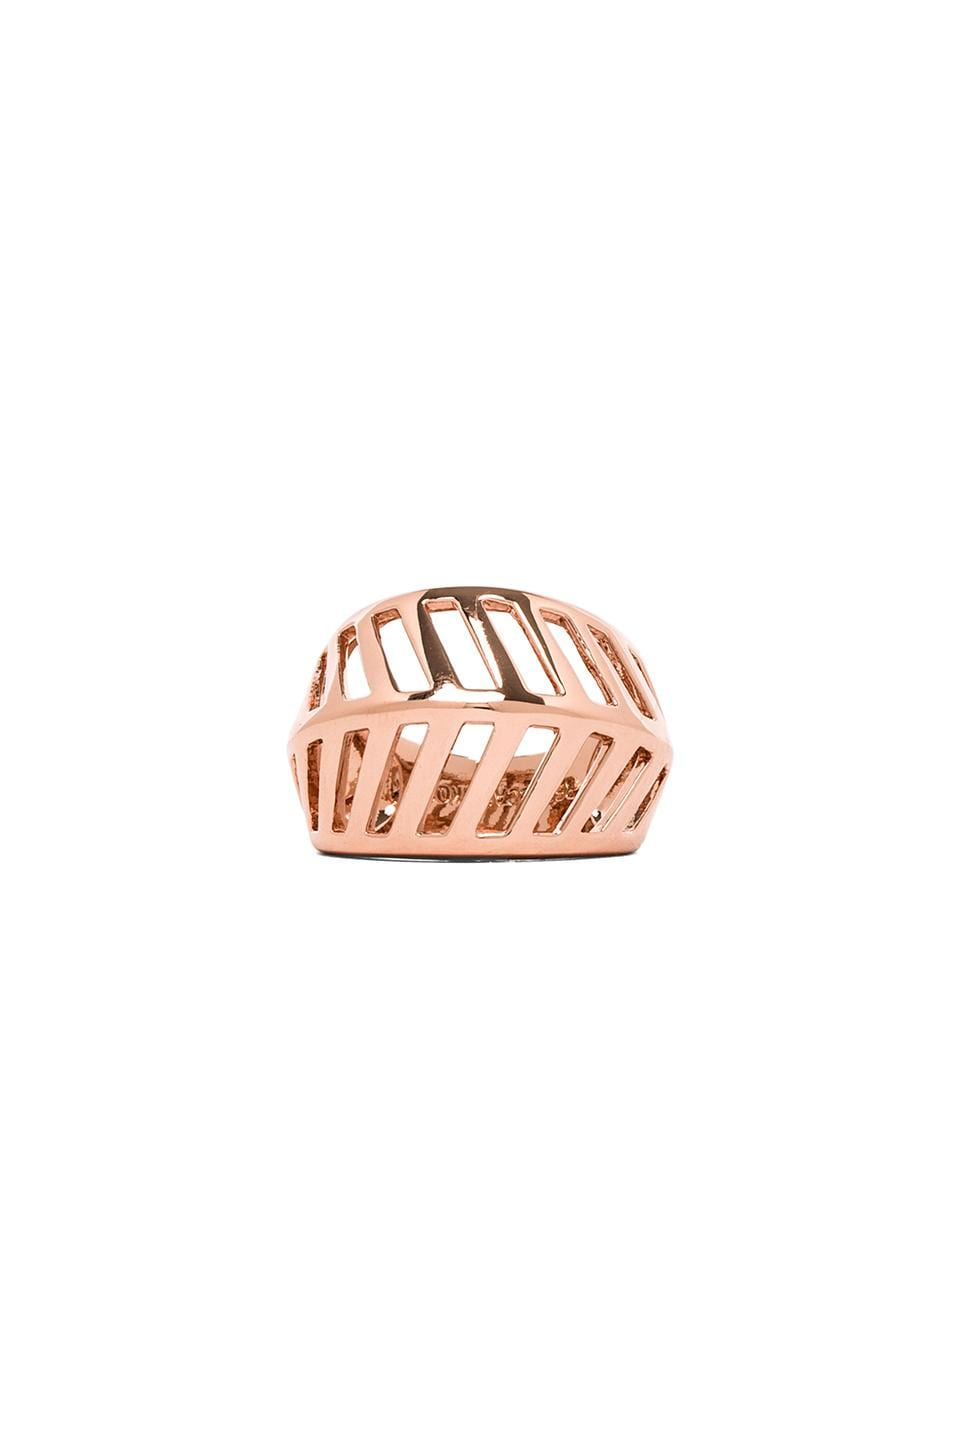 Rebecca Minkoff Grill Ring in Rose Gold